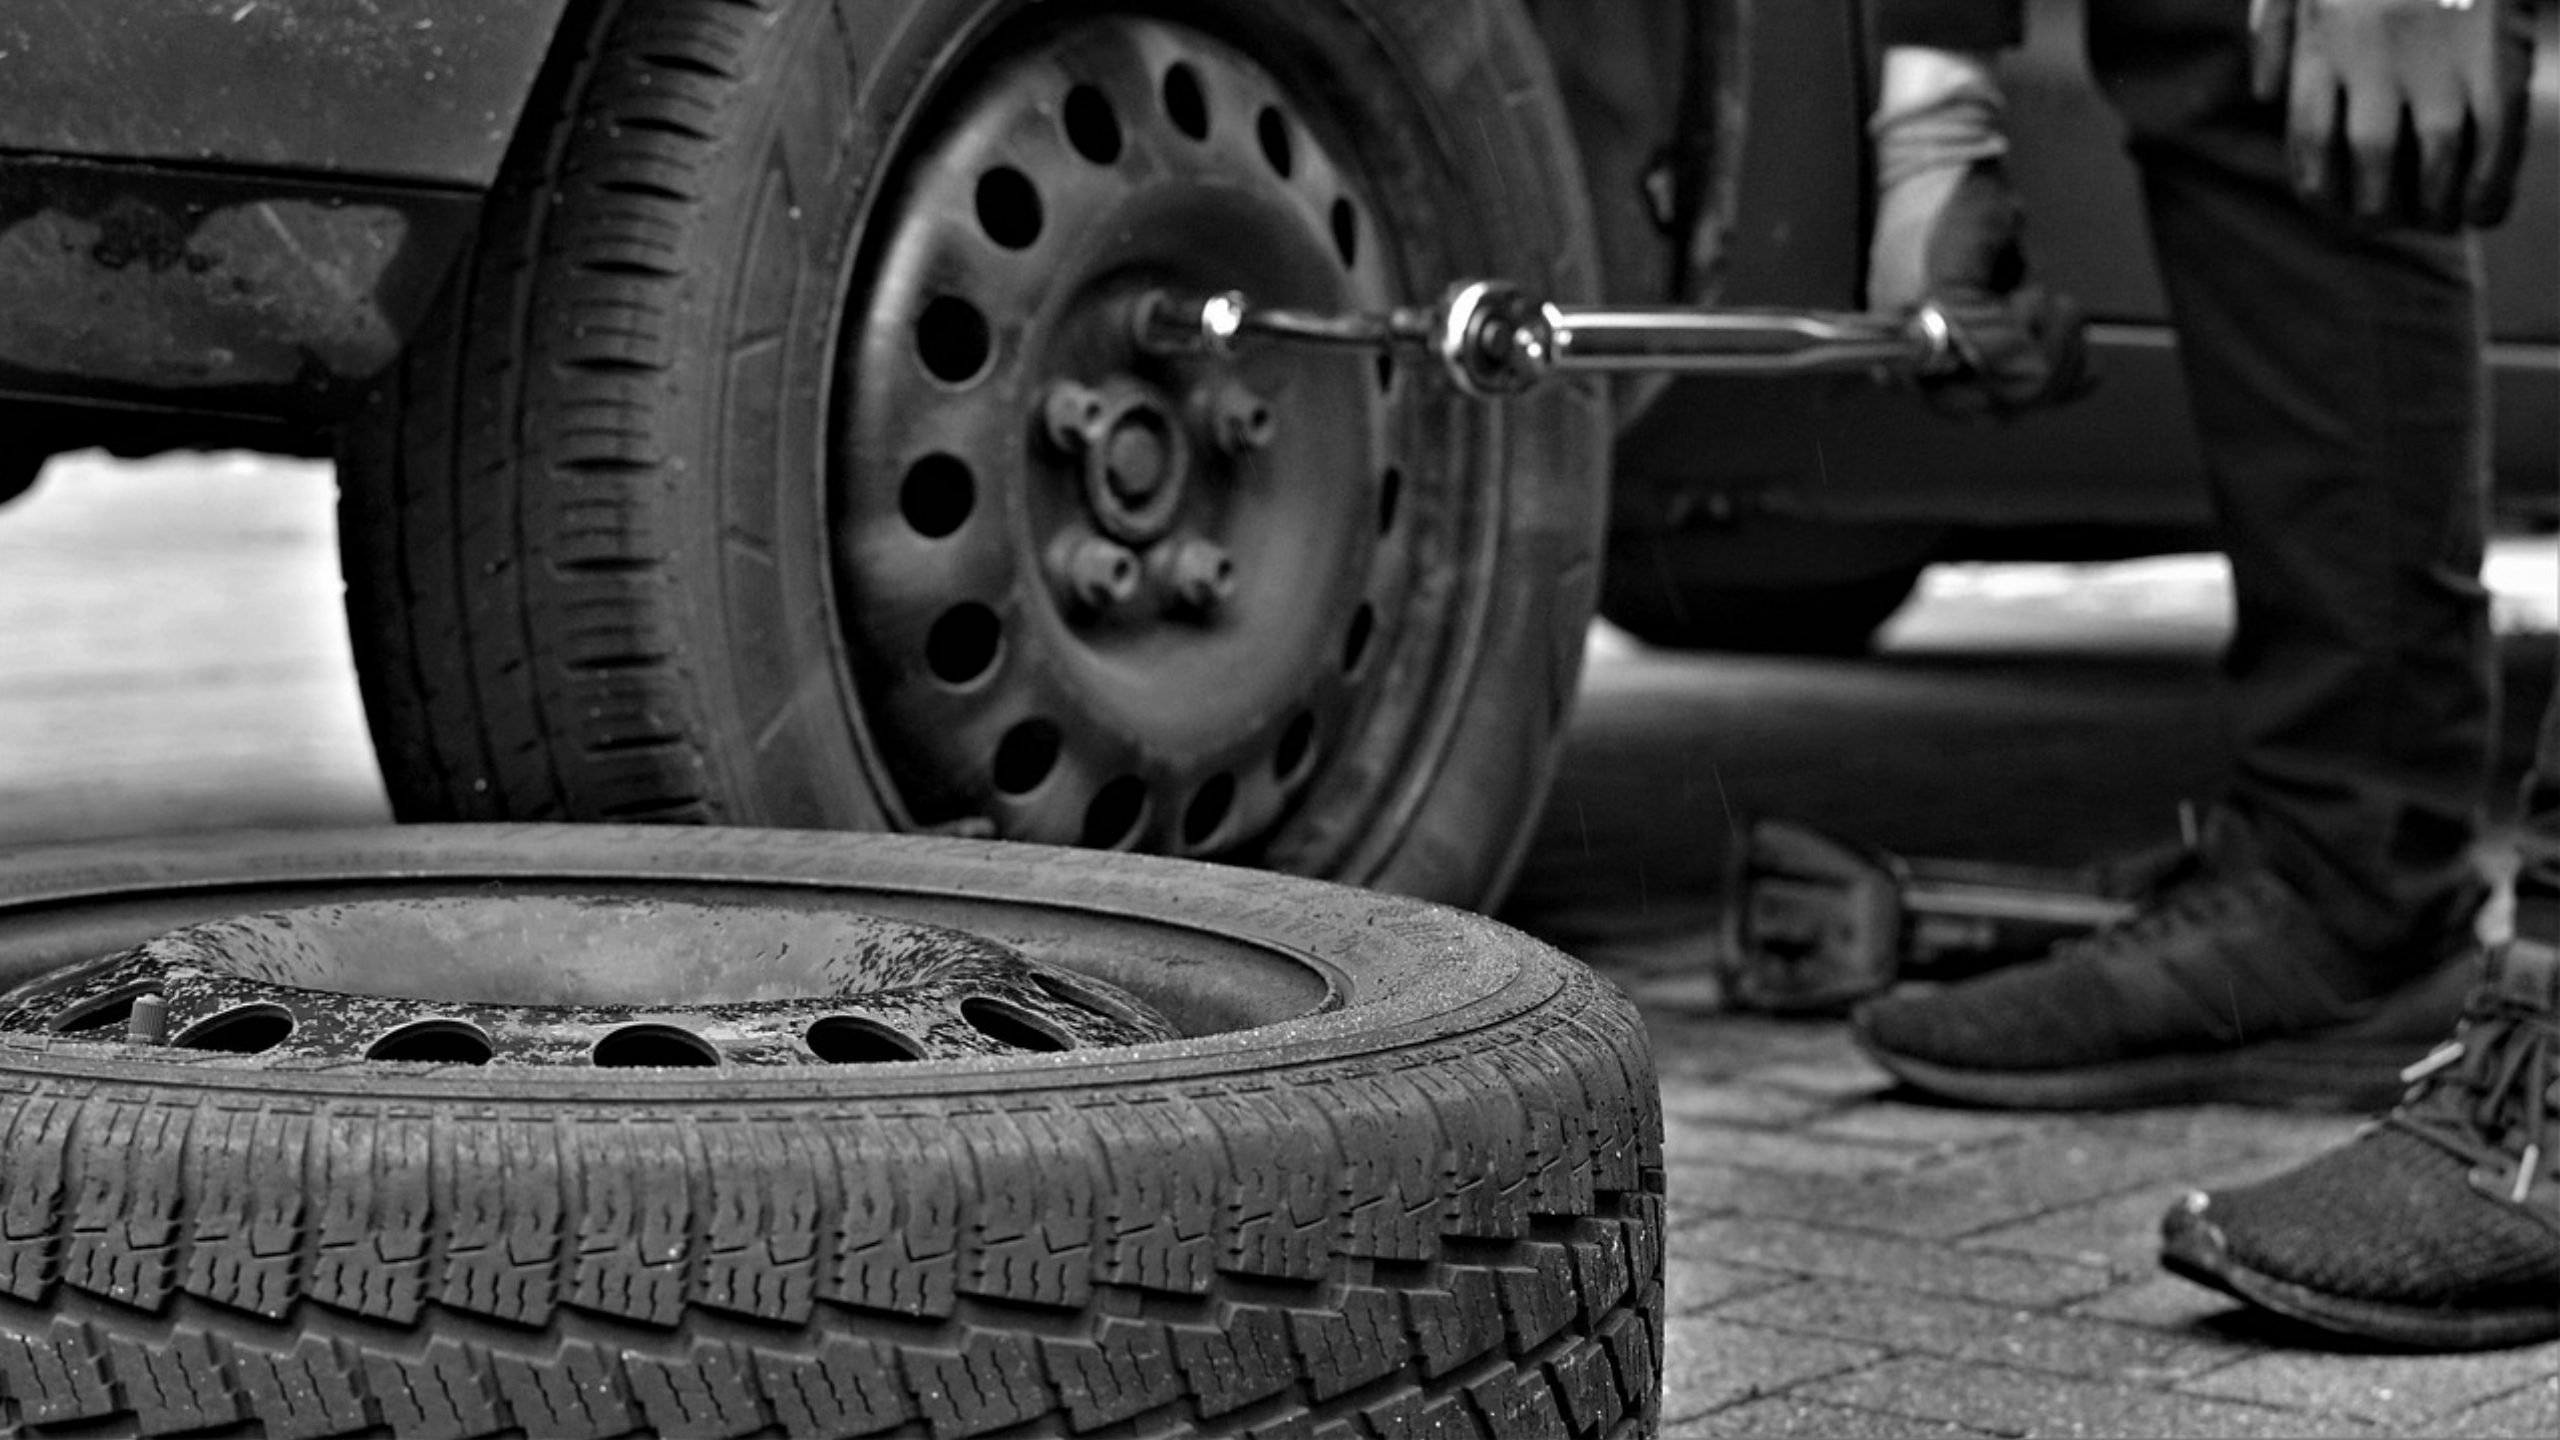 Car Tyres: Top 5 Rules To Follow For The Wellness